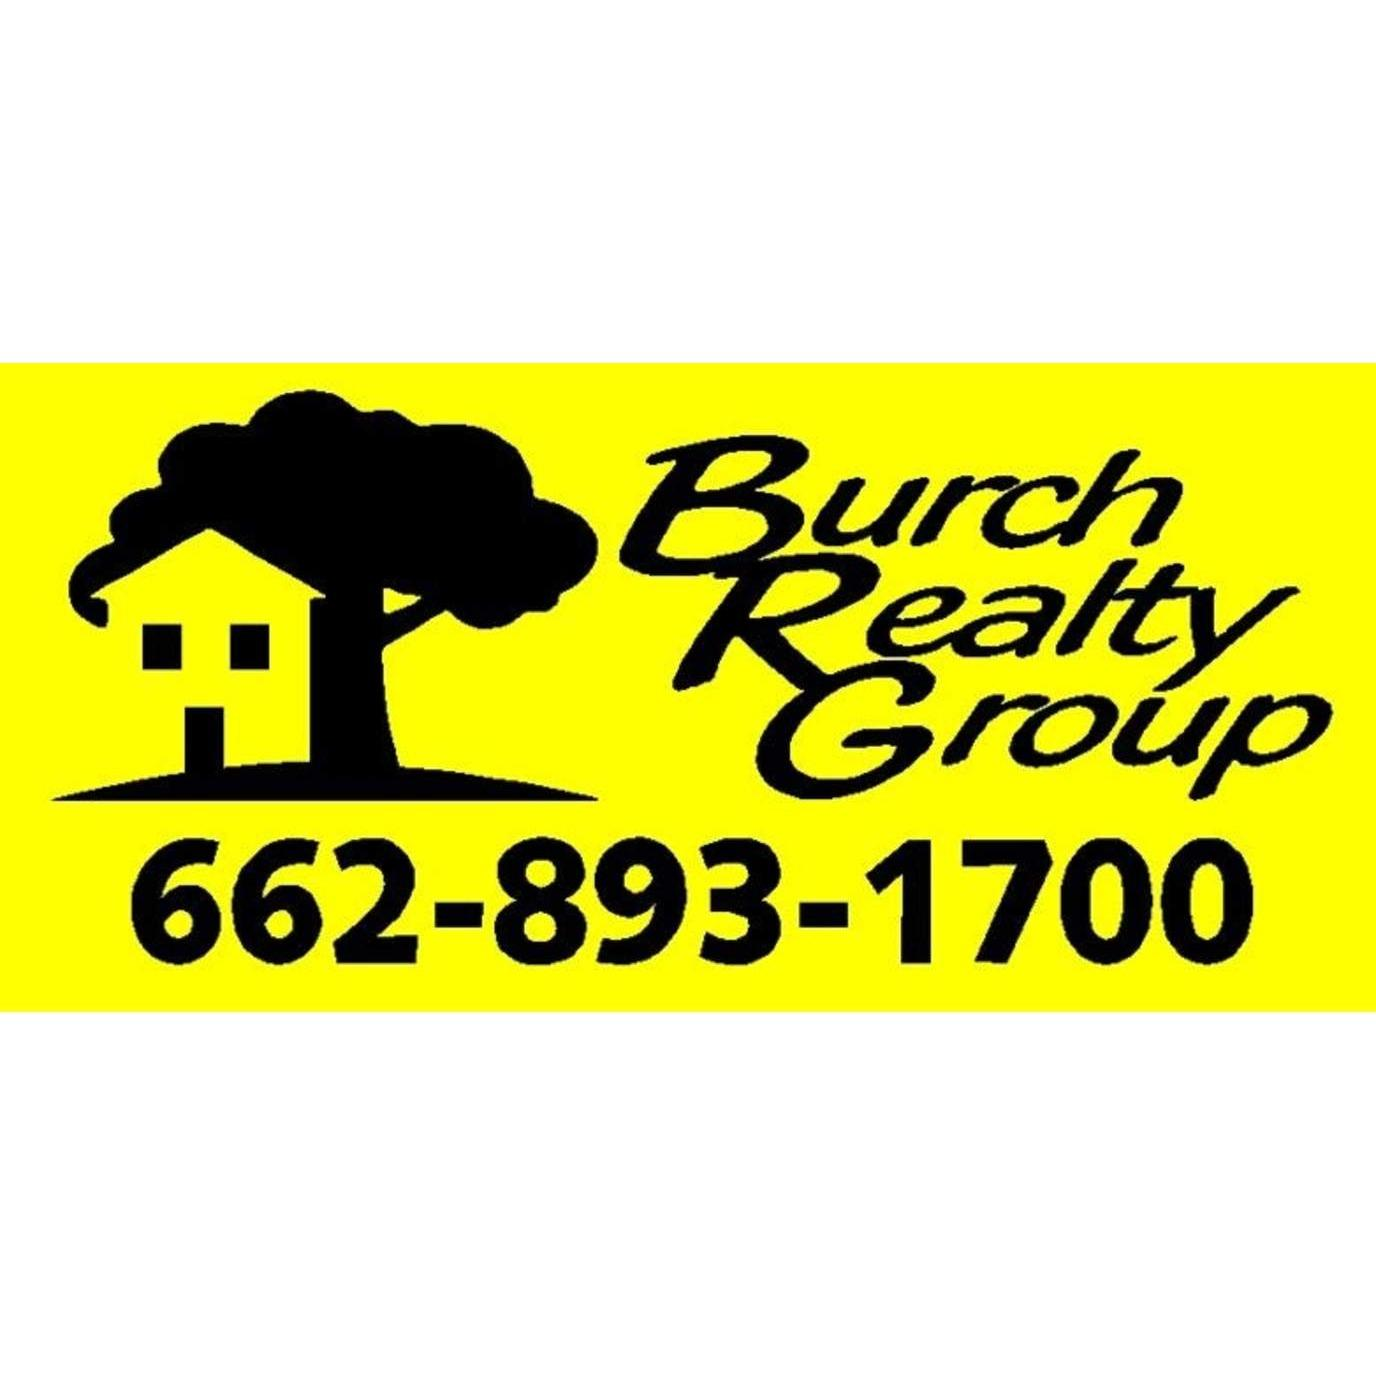 McCall Brice Team - Burch Realty Group